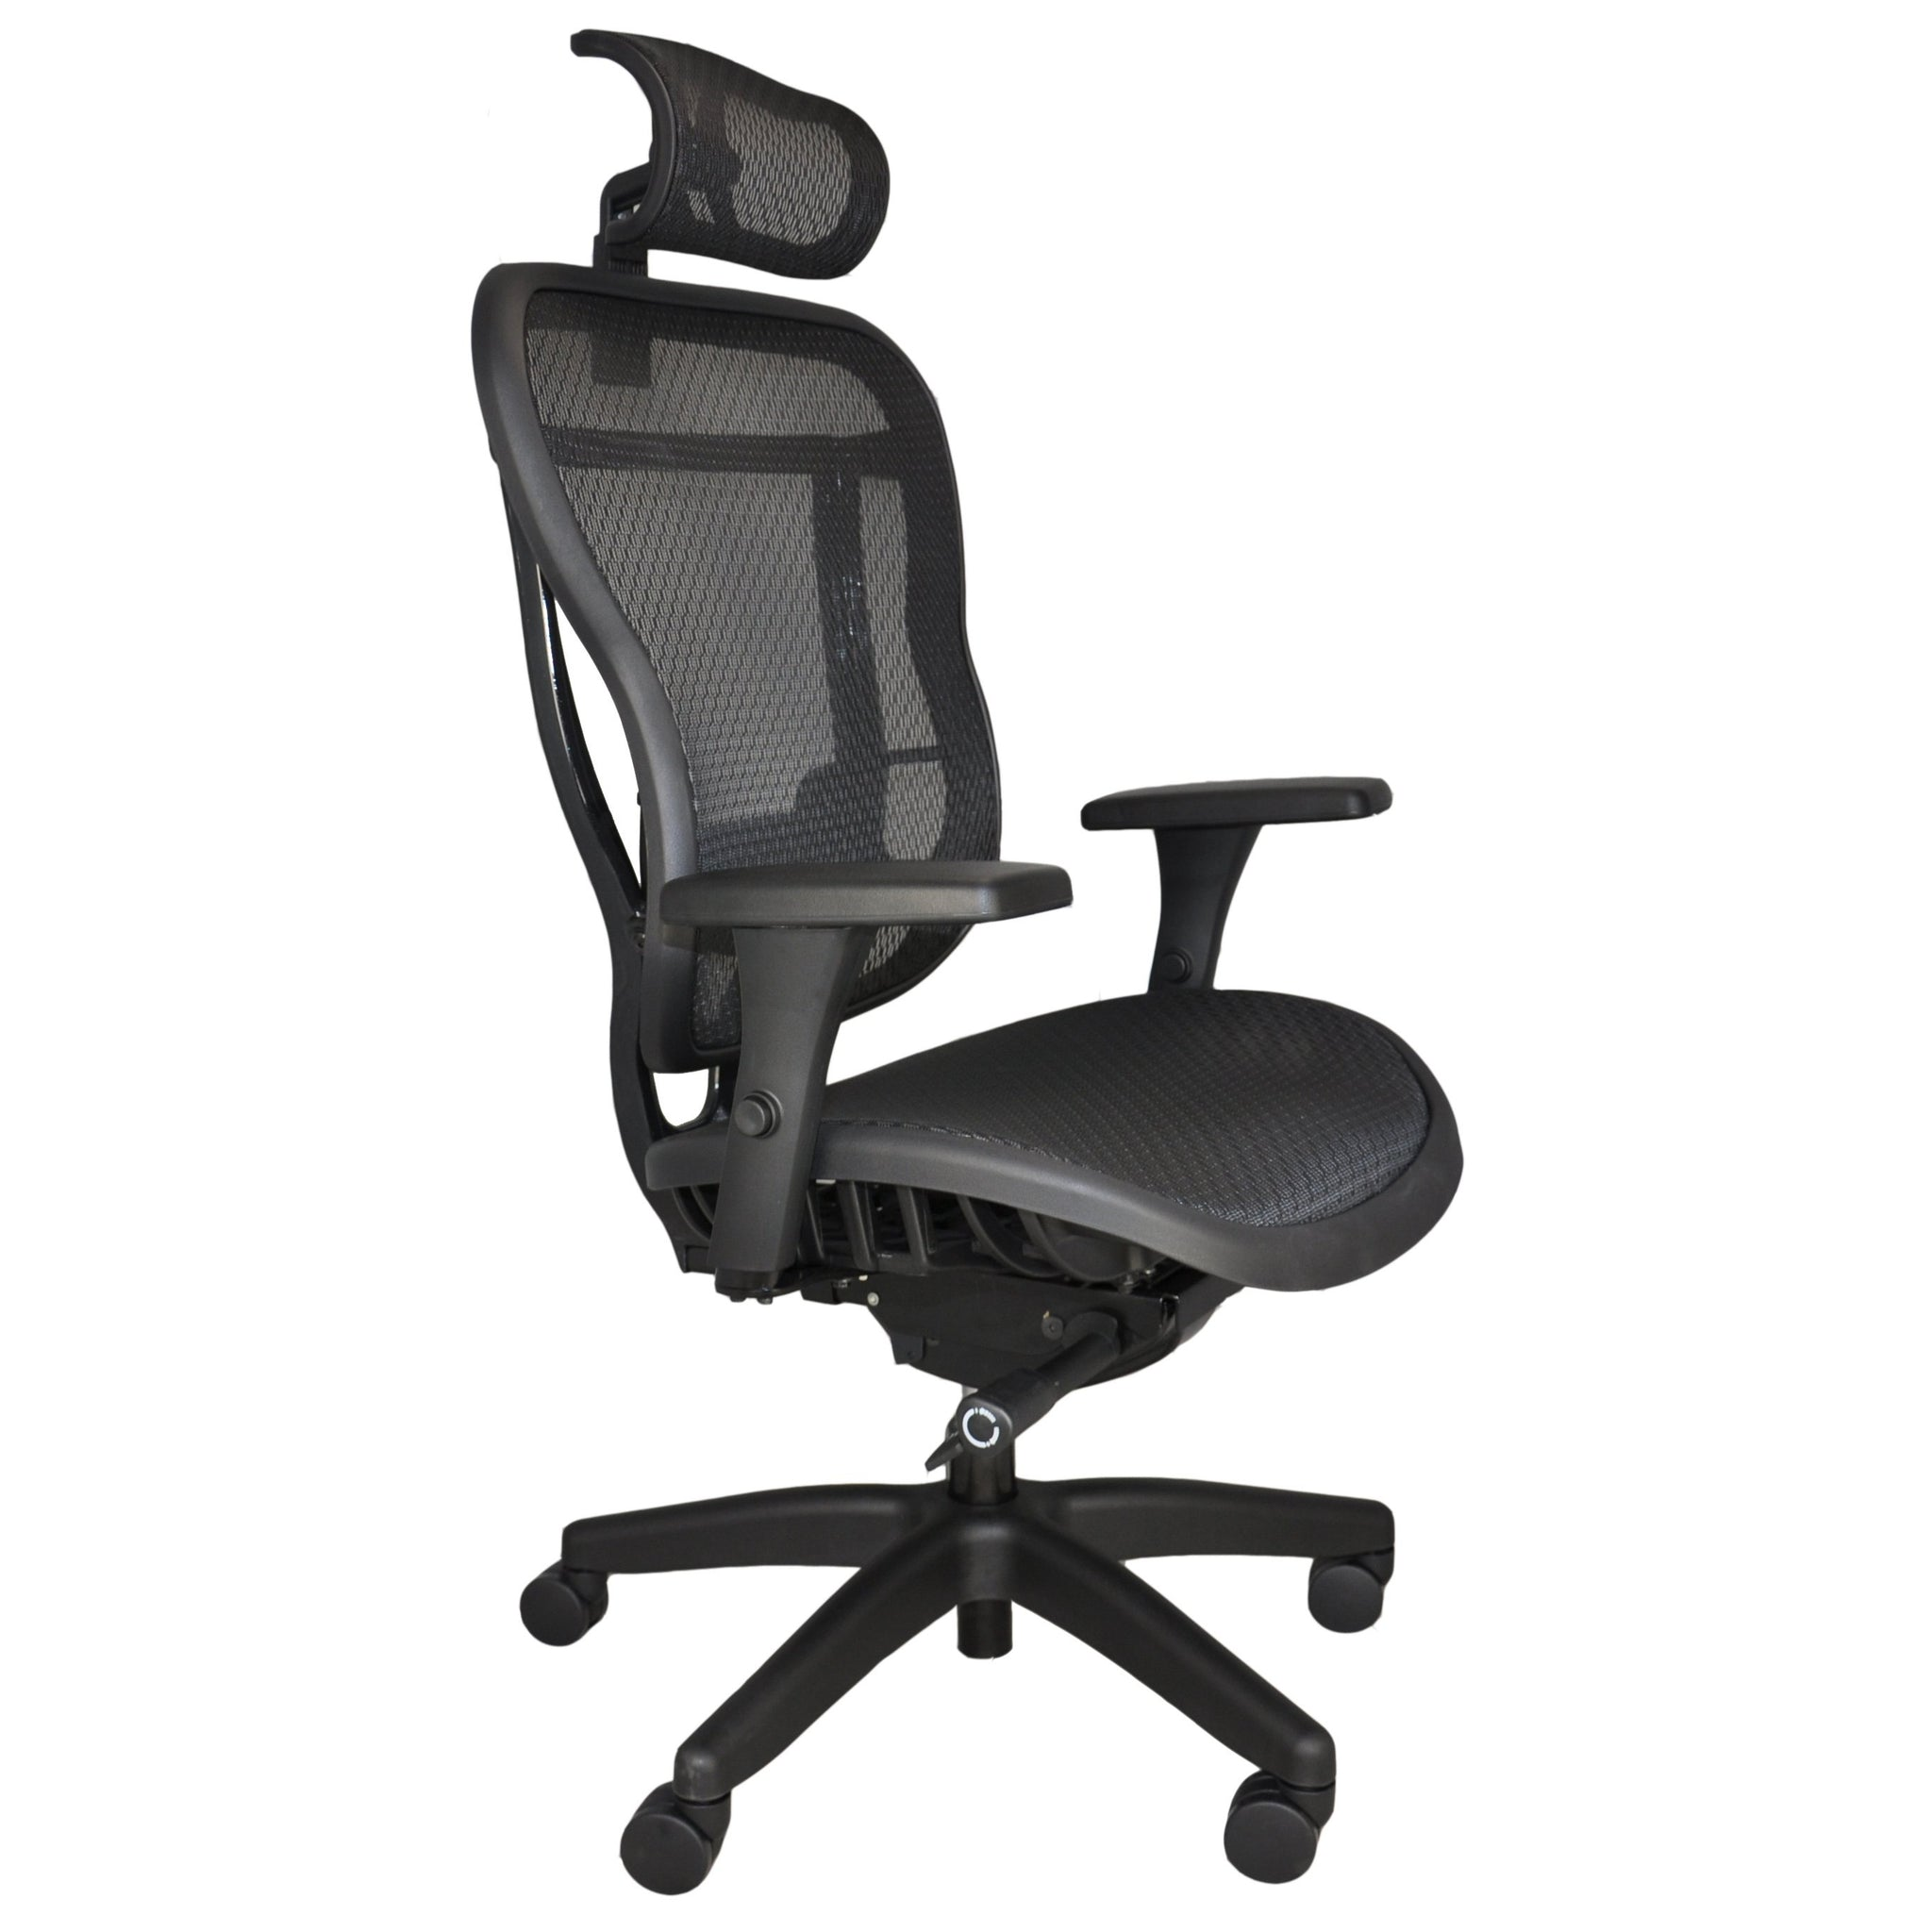 Oak Hollow Furniture Aloria Series Mesh Office Chair - with Headrest